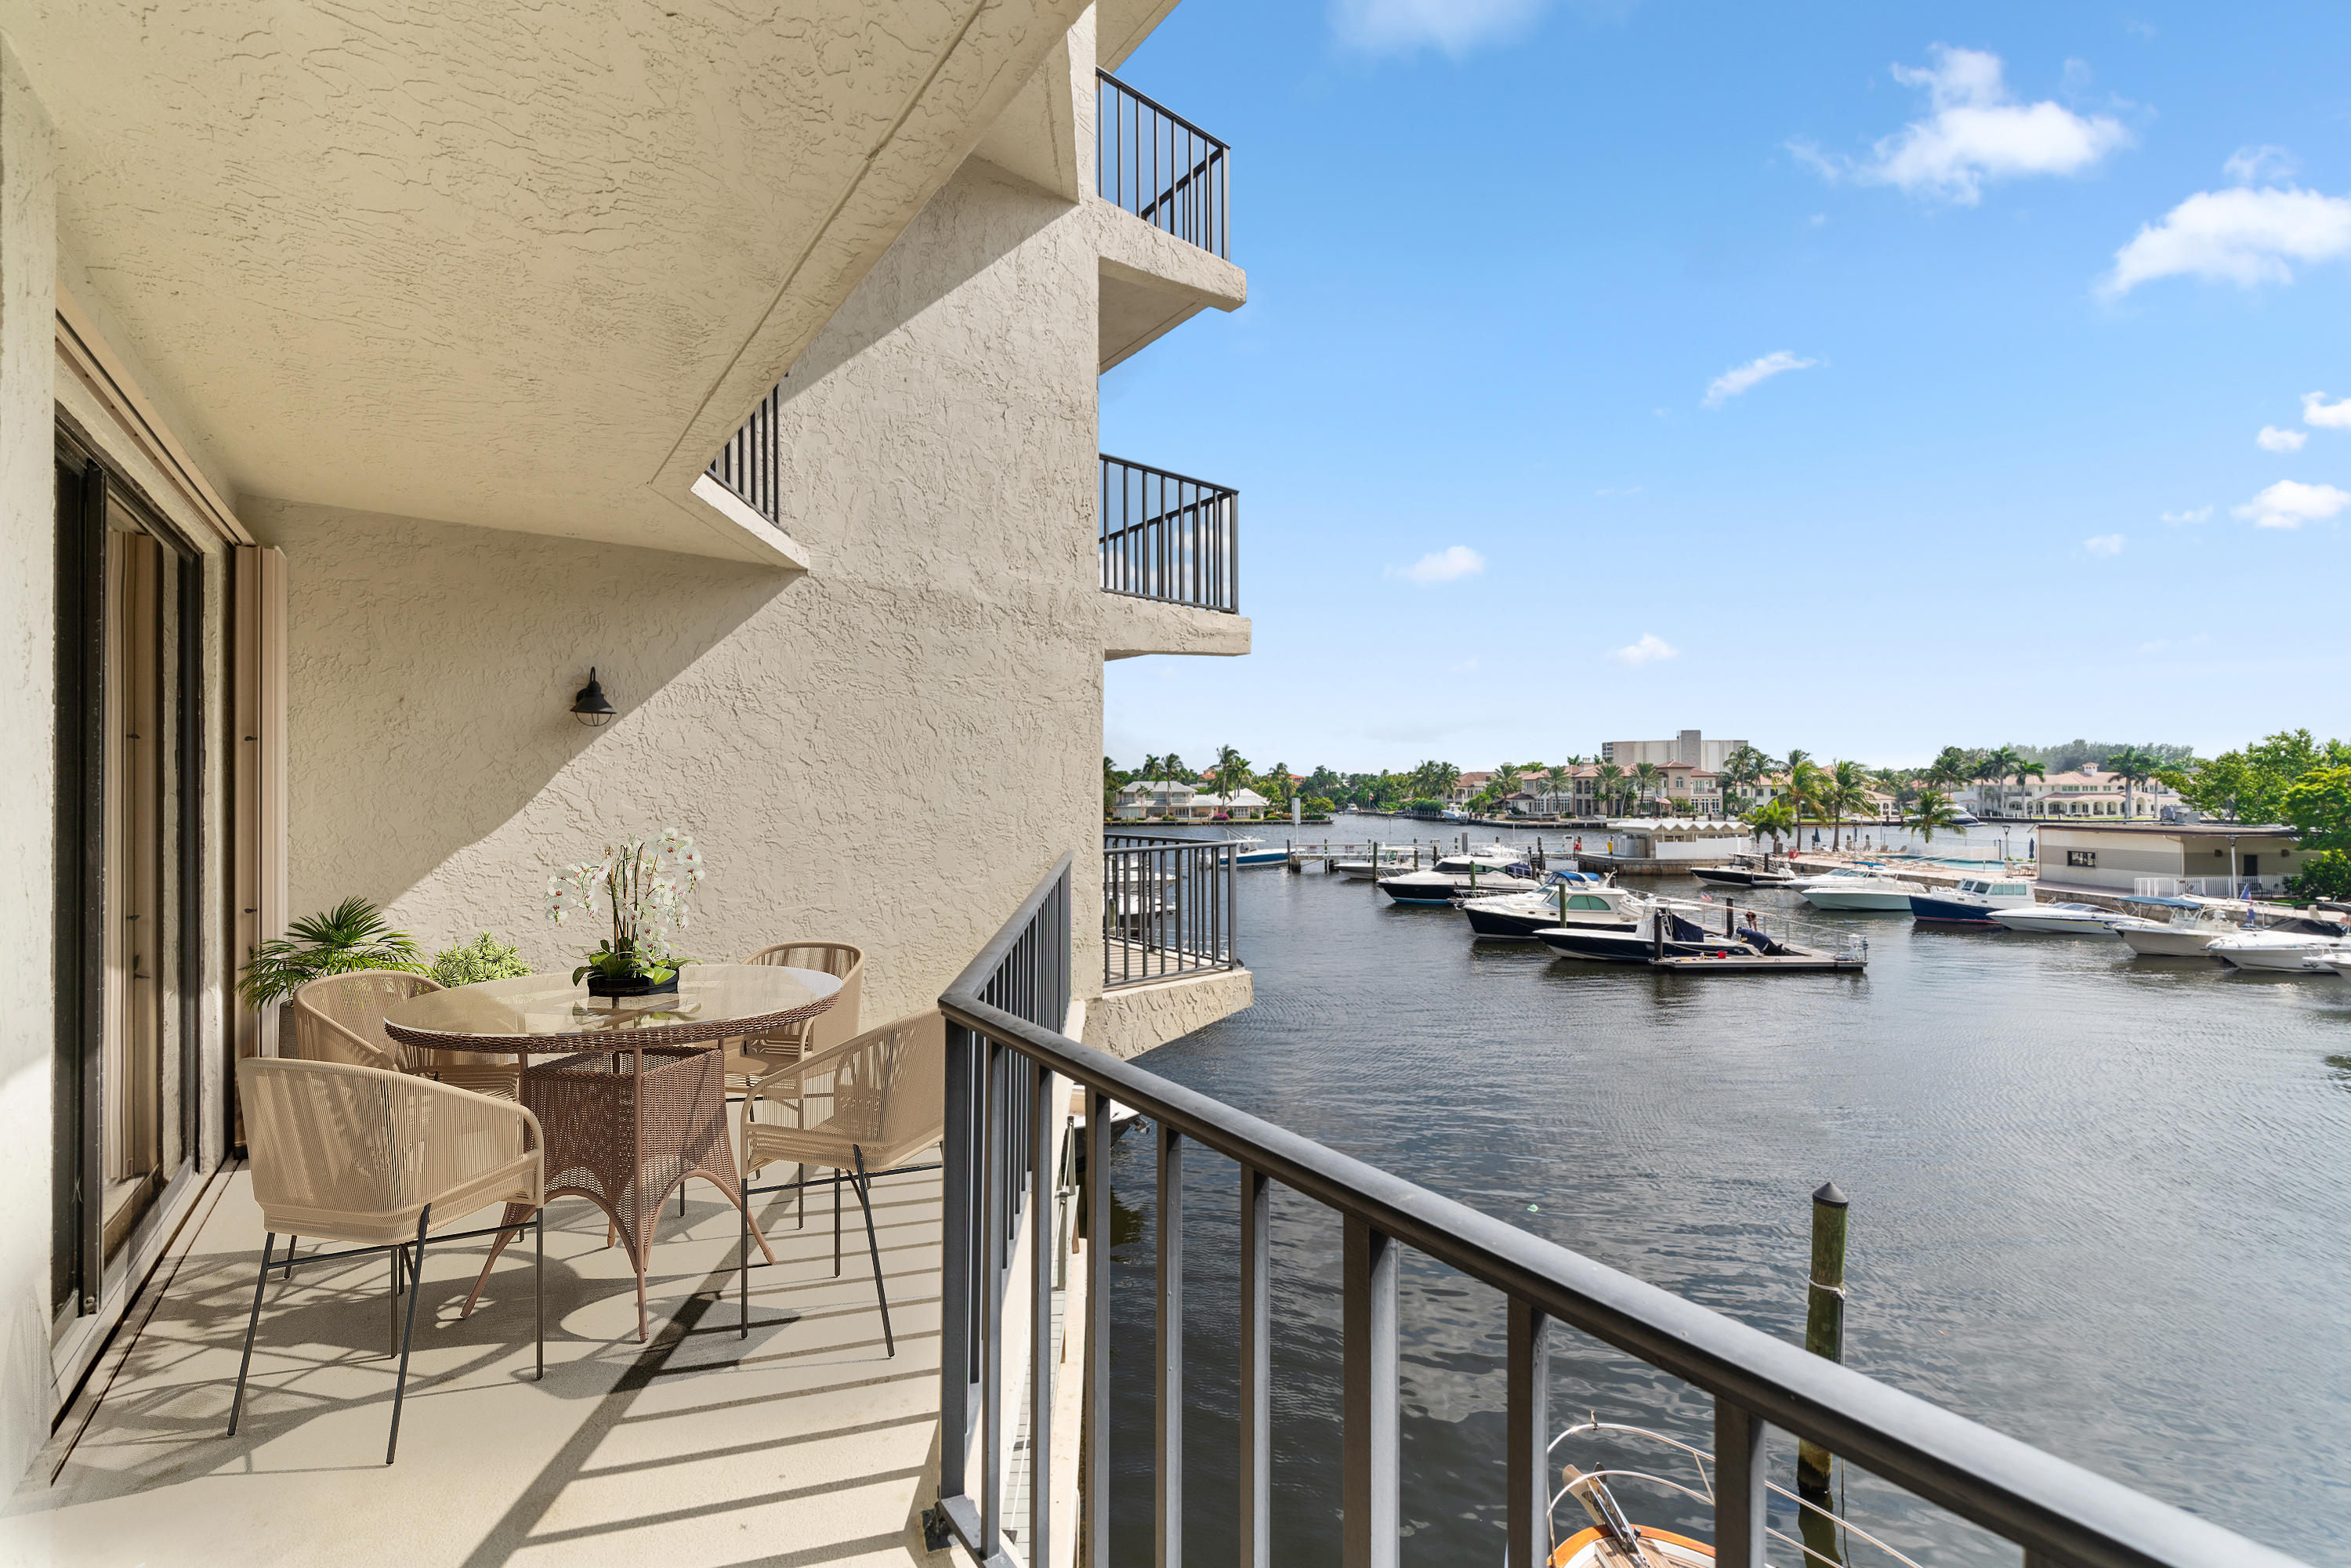 Impeccably renovated townhouse/condo with impressive Marina and Intracoastal views! With over $300k in upgrades, nothing was left undone in this property. The extra-large master suite has a two large walk-in closets, sitting area/office, its own balcony and updated bathroom with dual sinks and custom cabinets. Delray Harbor Club is a private marina community located just a few short blocks from trendy Atlantic Avenue in Downtown Delray Beach. This property makes a great primary/secondary residence or investment property with no rental waiting period. Residents can walk, bike or take a short ride to Delray's famous Atlantic Avenue and beautiful beaches. Pet-Friendly Delray Harbor Club has only 50 residences and is one of the best kept secrets in Delray Beach on the direct Intracoastal!